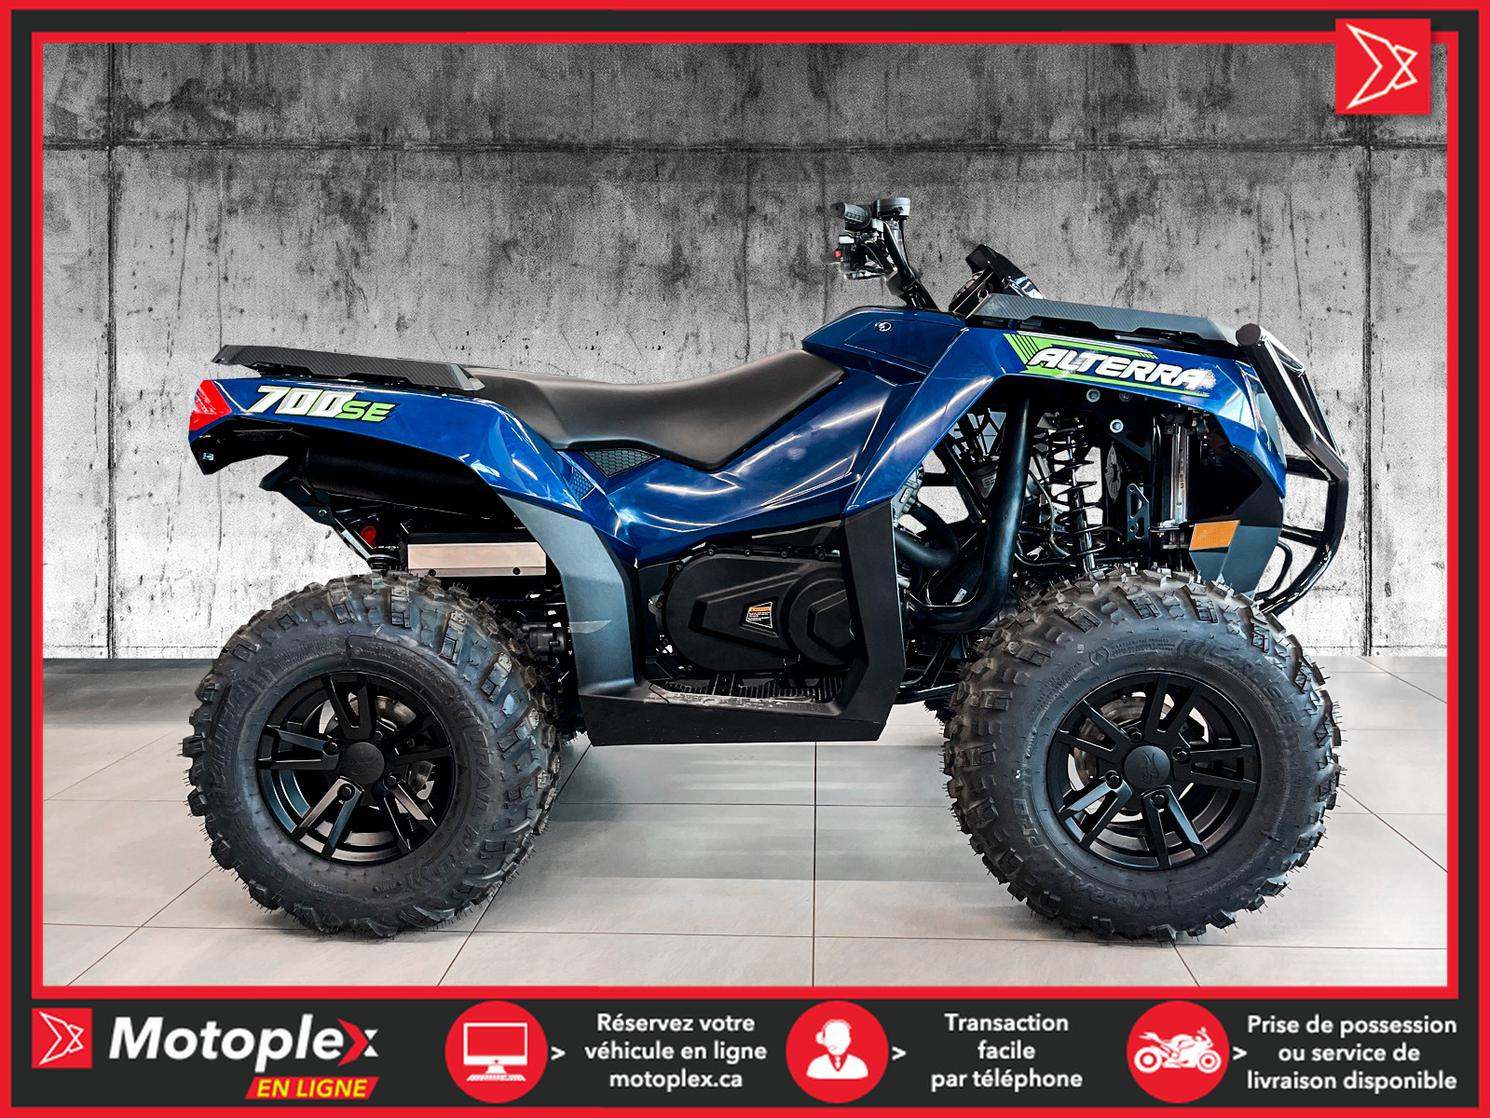 2021 Arctic Cat ALTERRA 700 SE EPS - 35$/semaine